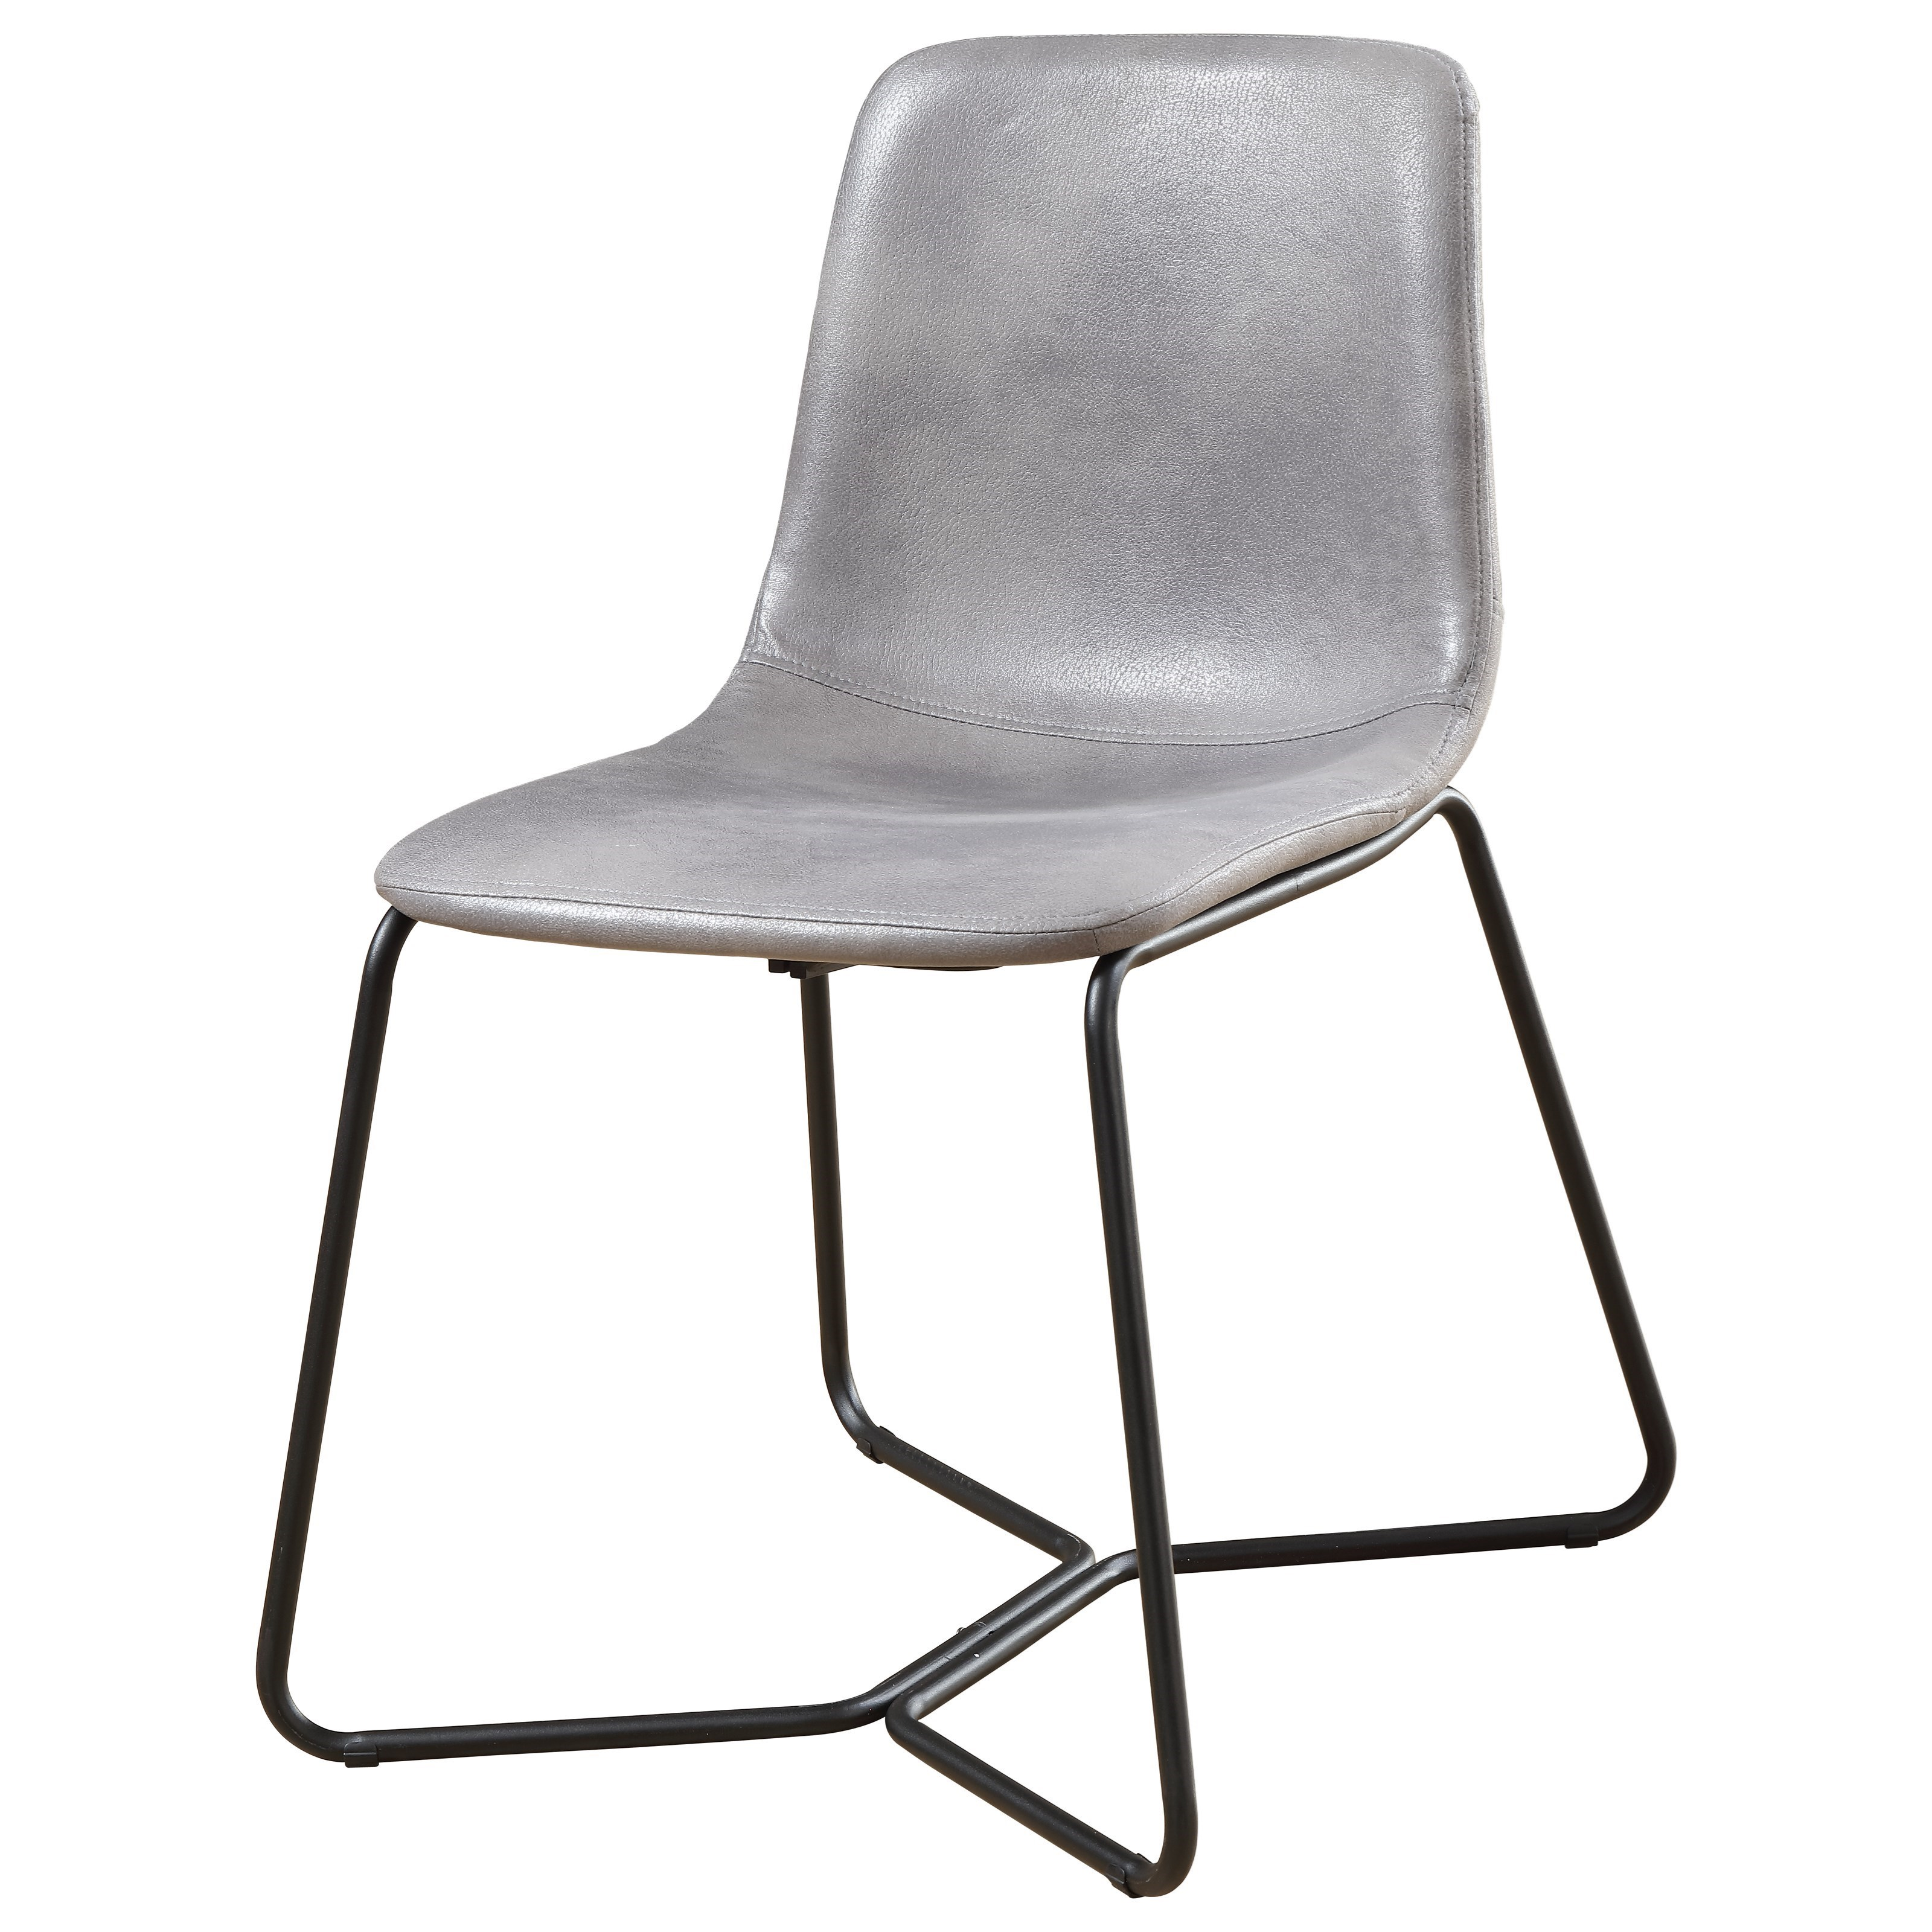 Emmett Upholstered Side Chair by Emerald at Northeast Factory Direct